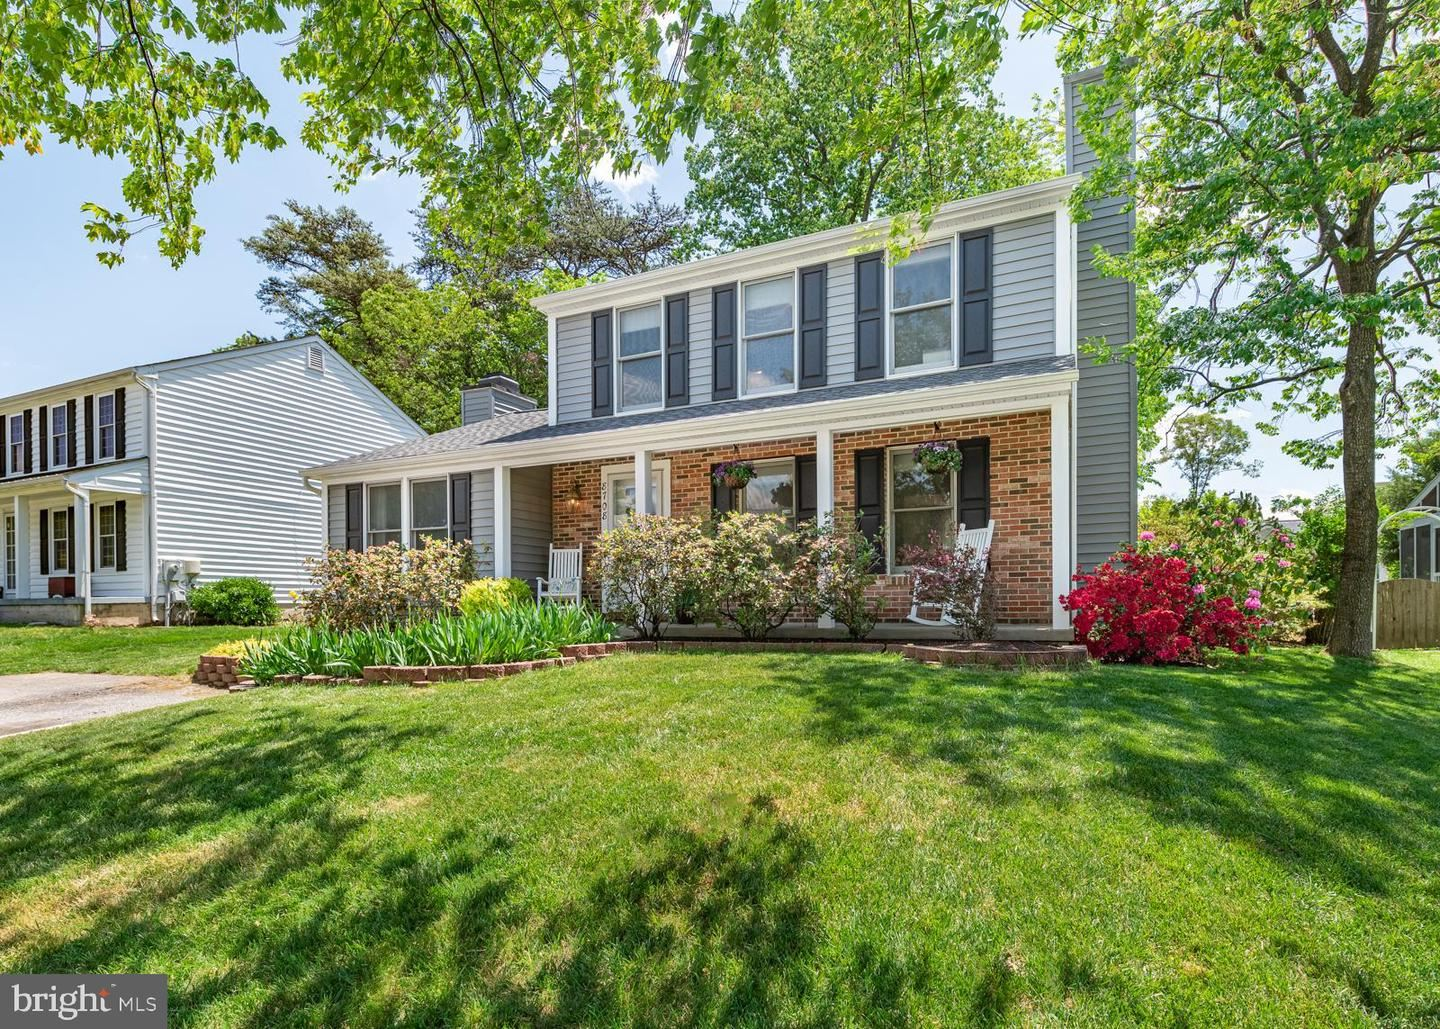 8708 CLEMENTE CT, Jessup, MD 20794 - MLS#: MDHW294170